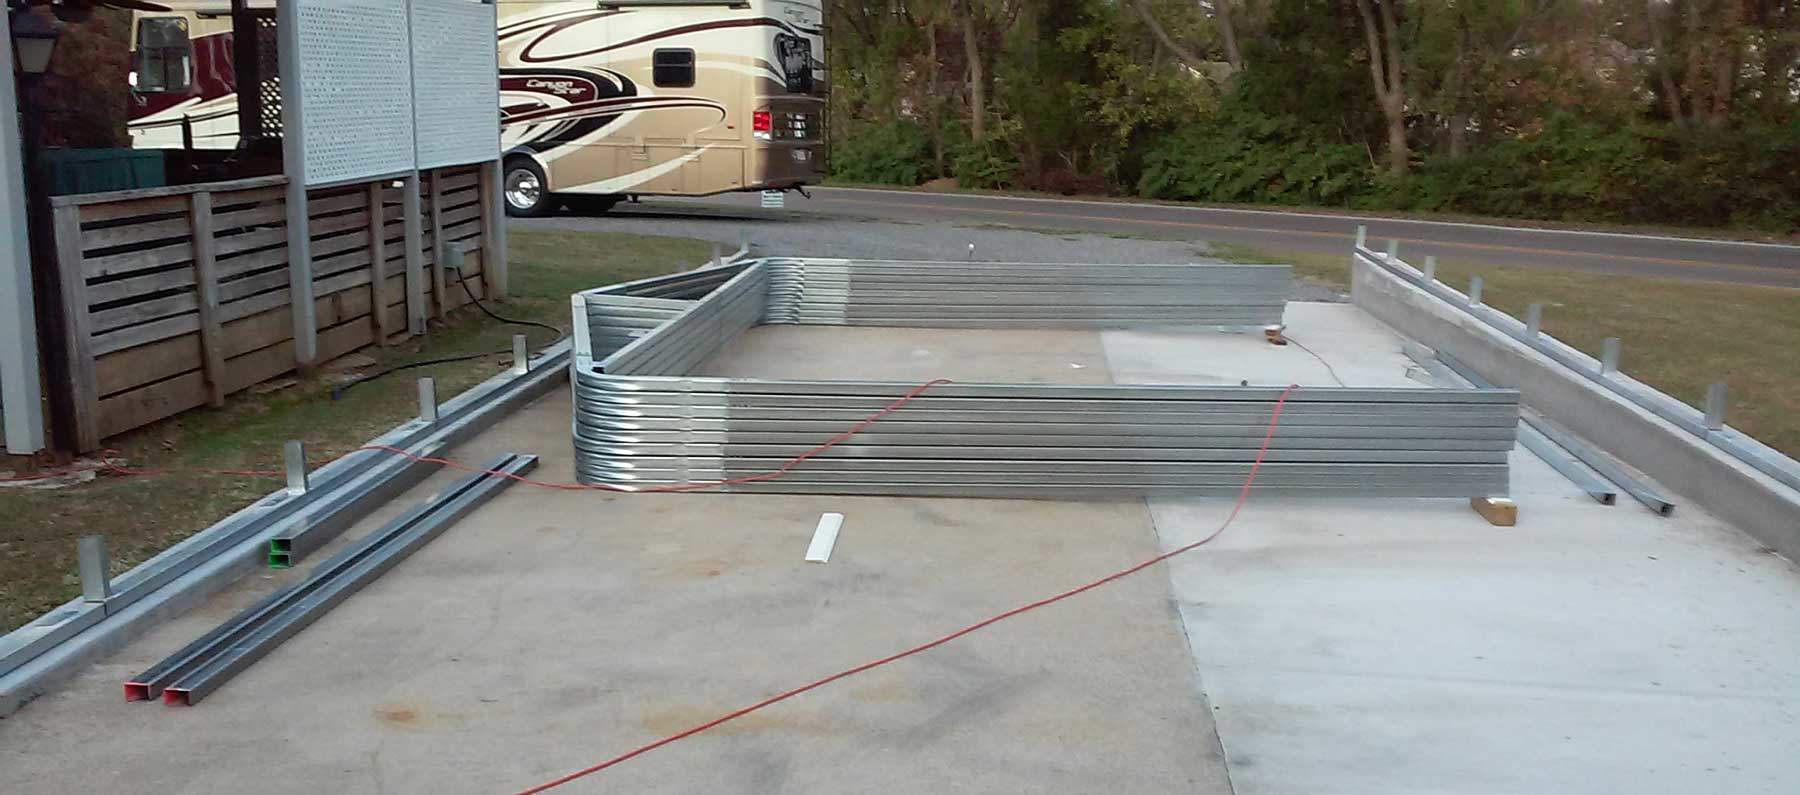 Install the base rails and assemble the wall / truss system